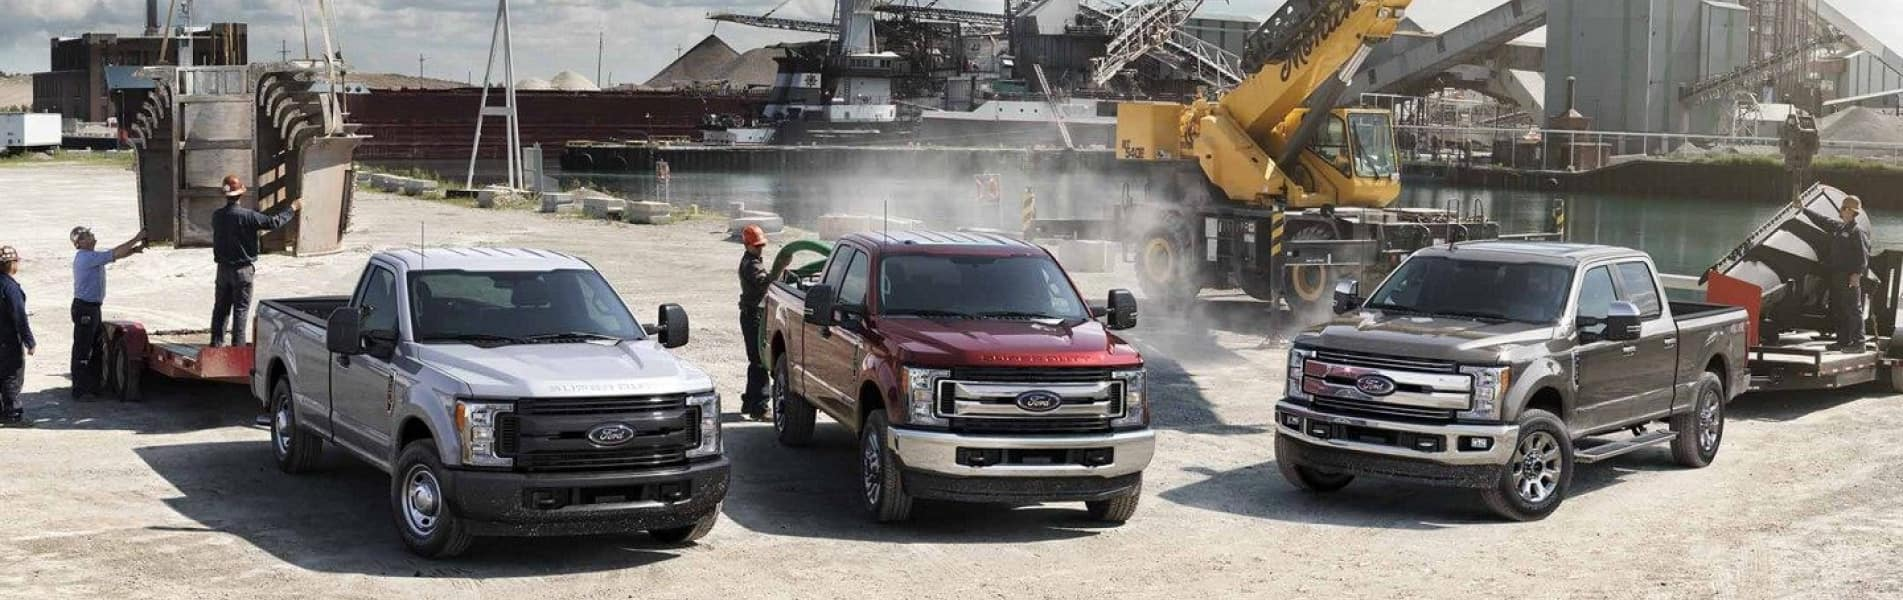 The 2019 Ford F-350 available at Sutton Ford Commercial Truck Center